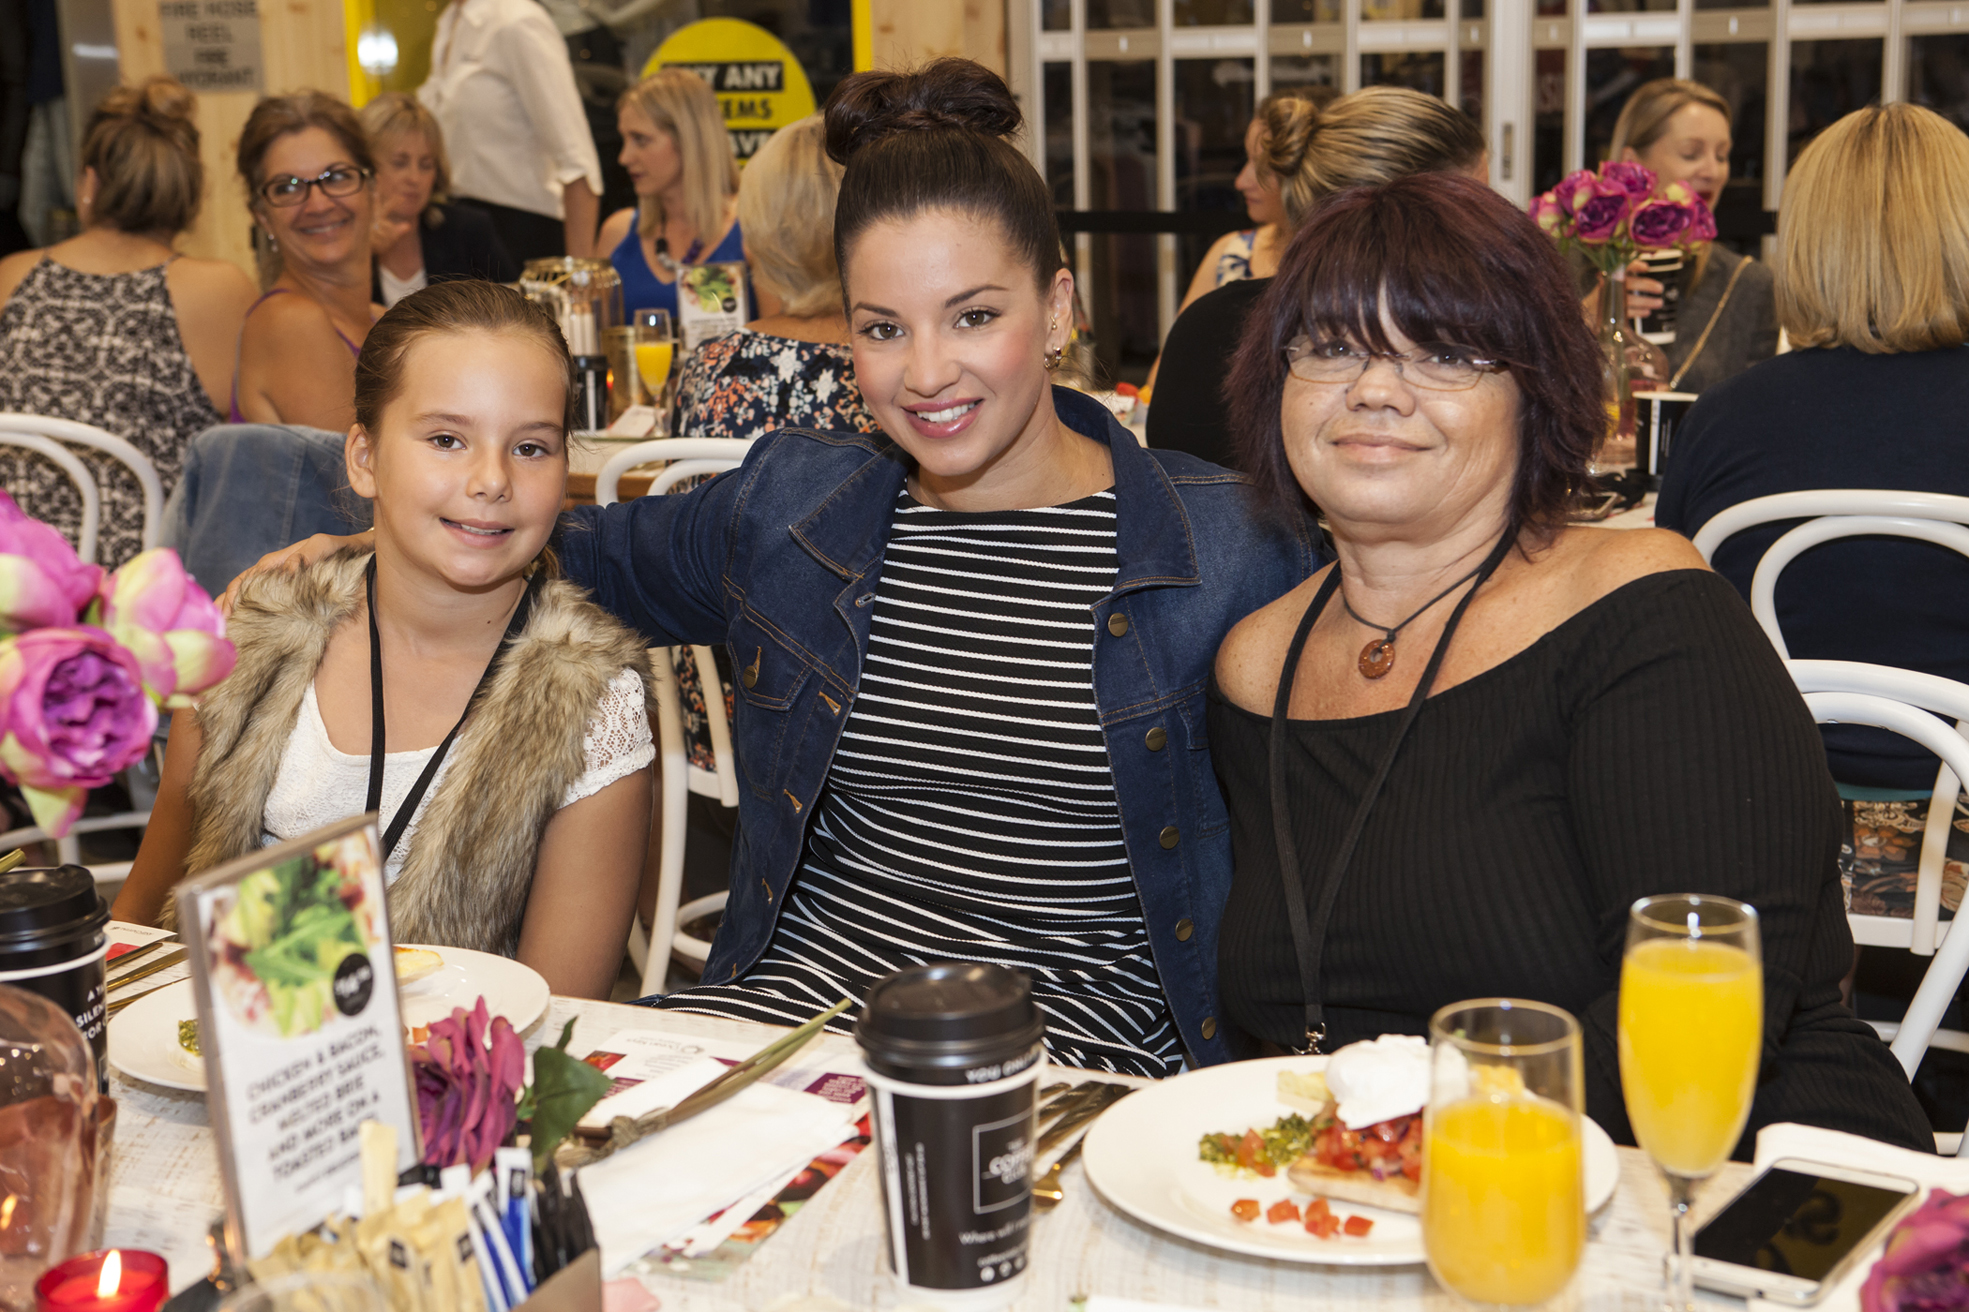 Kiah Edwards of Cloverdale with Quinns Rocks residents Tegan Beckett and Grace Venrooy. Pictures: ASCP Photography